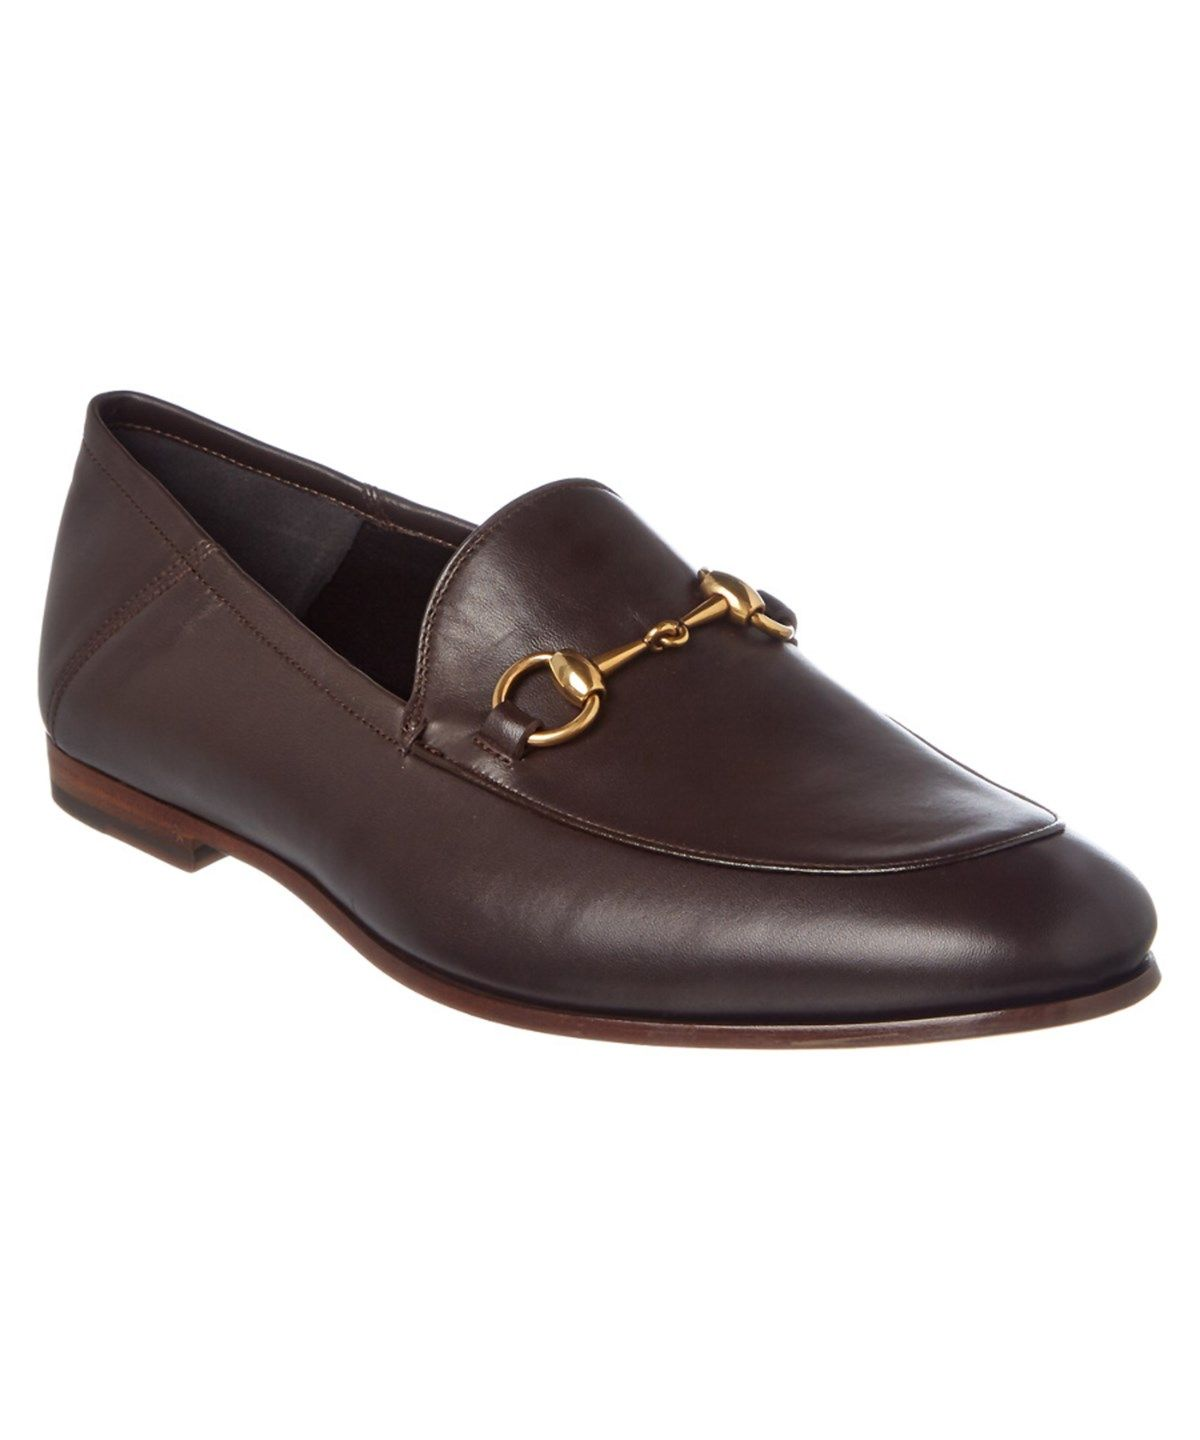 08499d03685 GUCCI GUCCI HORSEBIT LEATHER LOAFER .  gucci  shoes  shoes